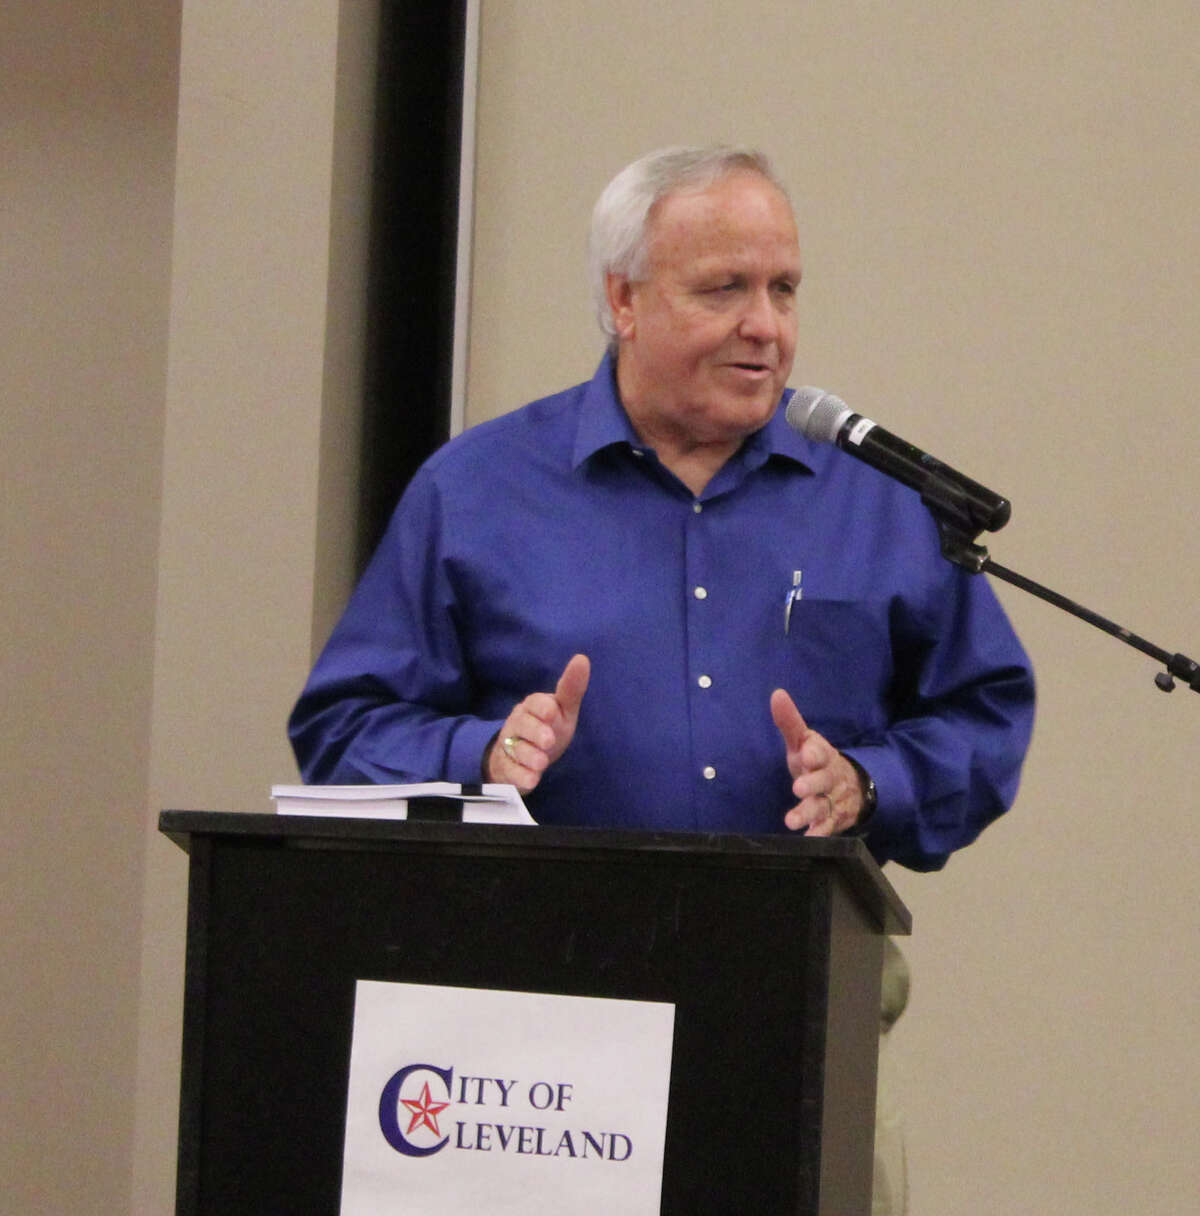 County Judge Jay Knight speaks at the Greater Cleveland Chamber's Oct. 5 luncheon.